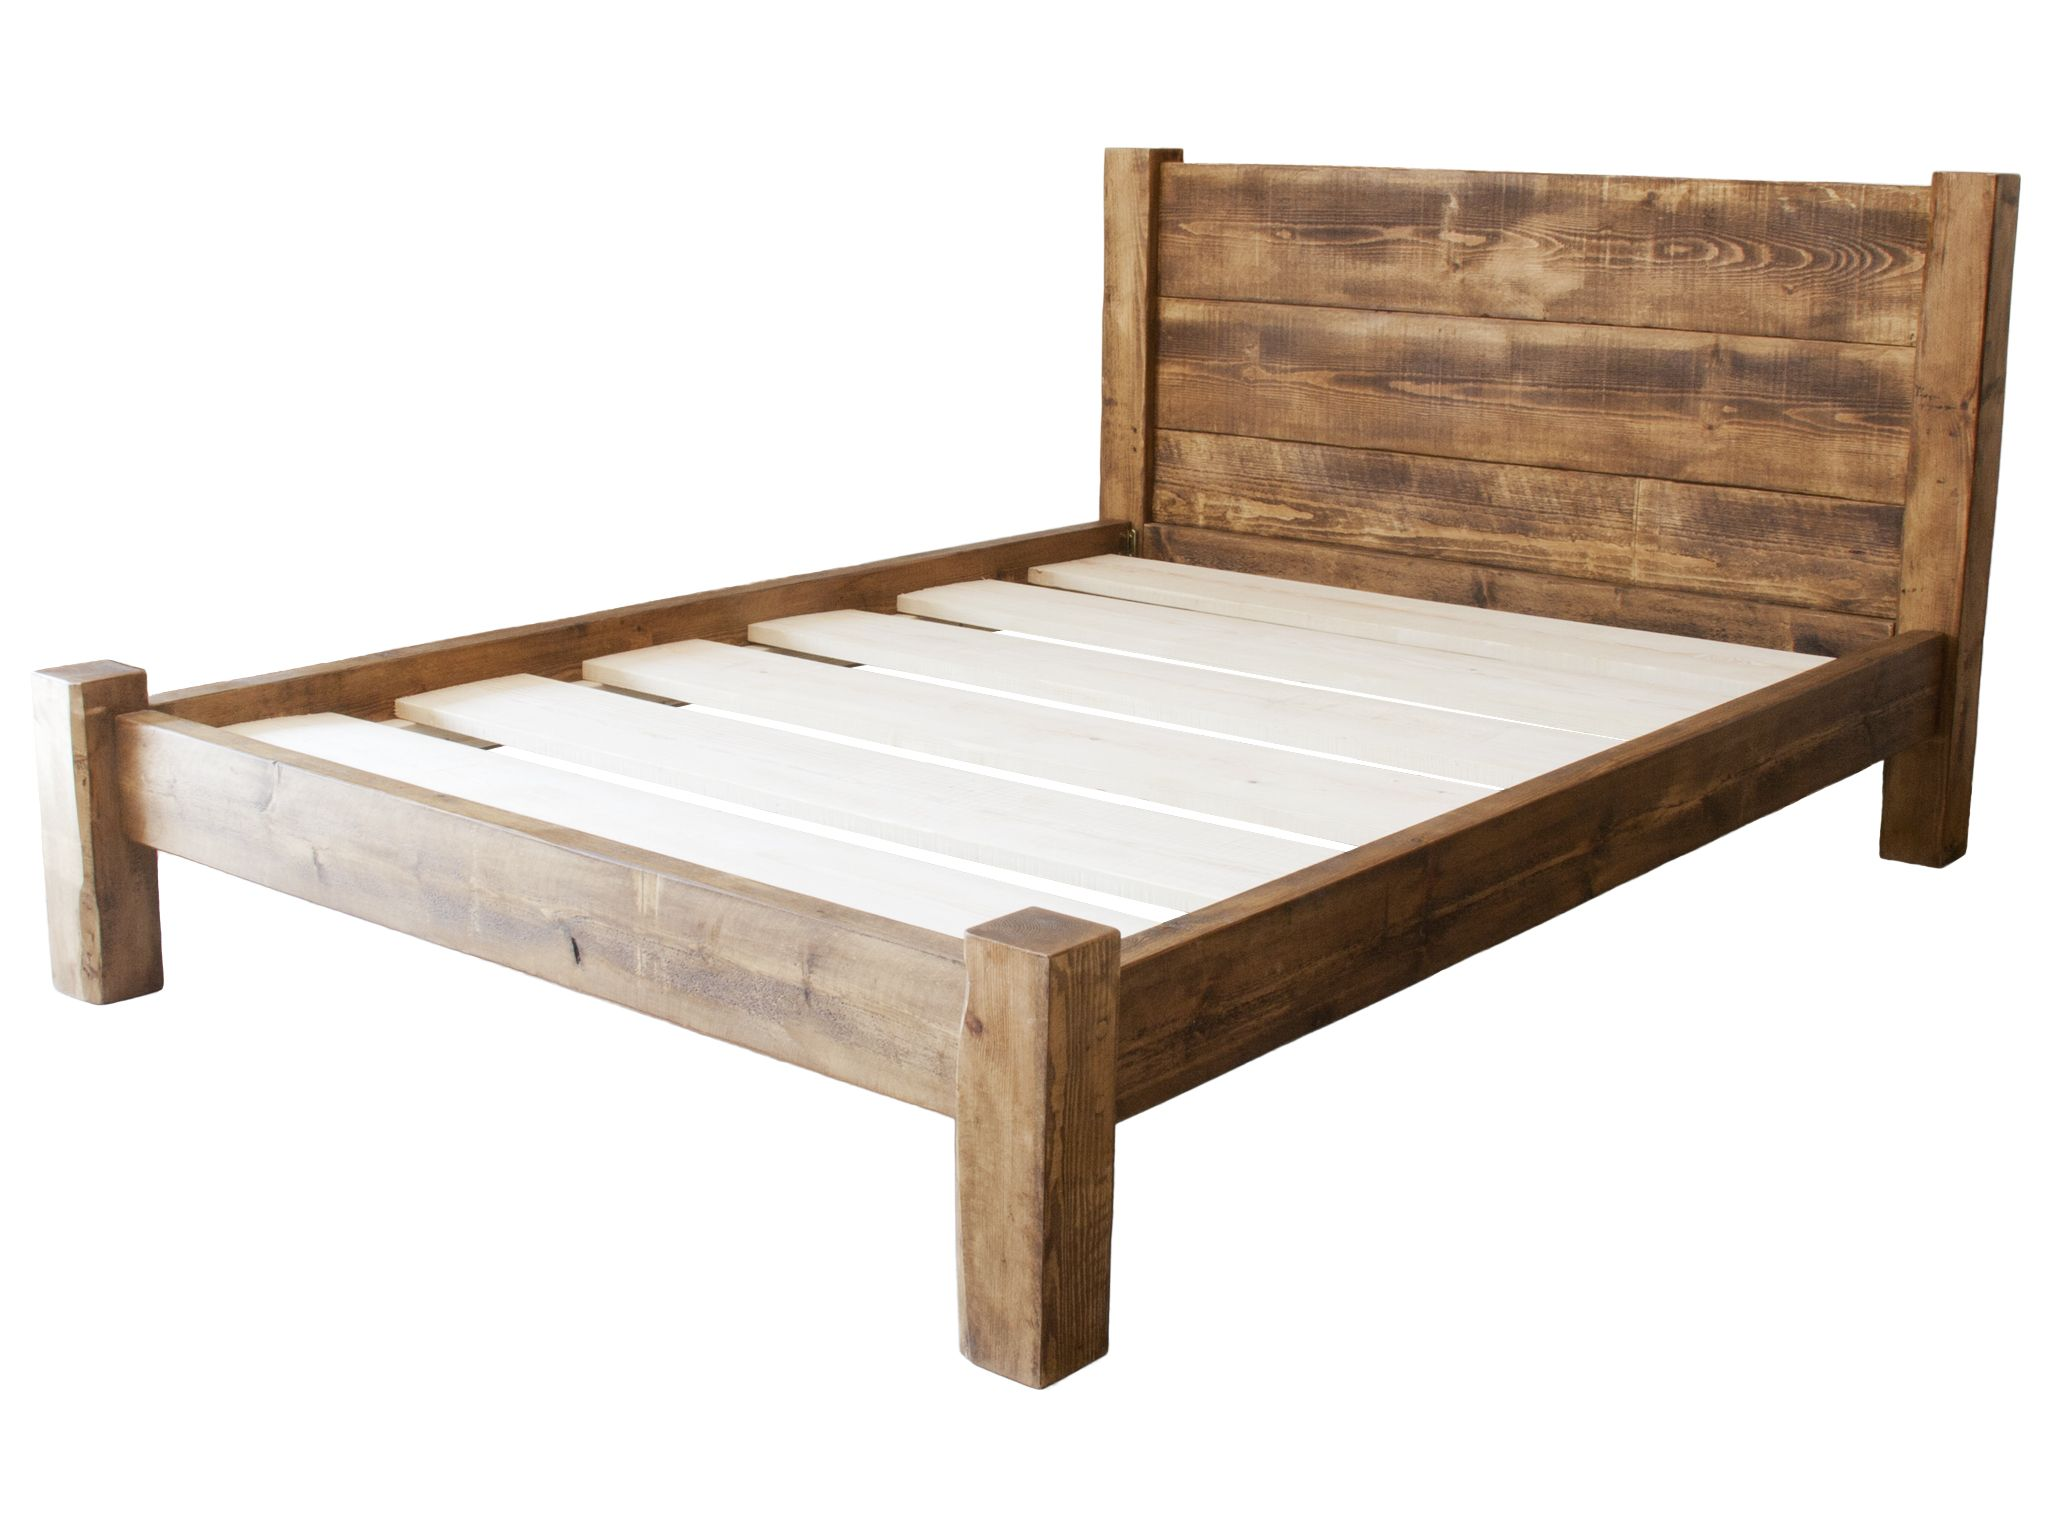 These Small Double Beds Are Charming Yet Simple These Solid Wood